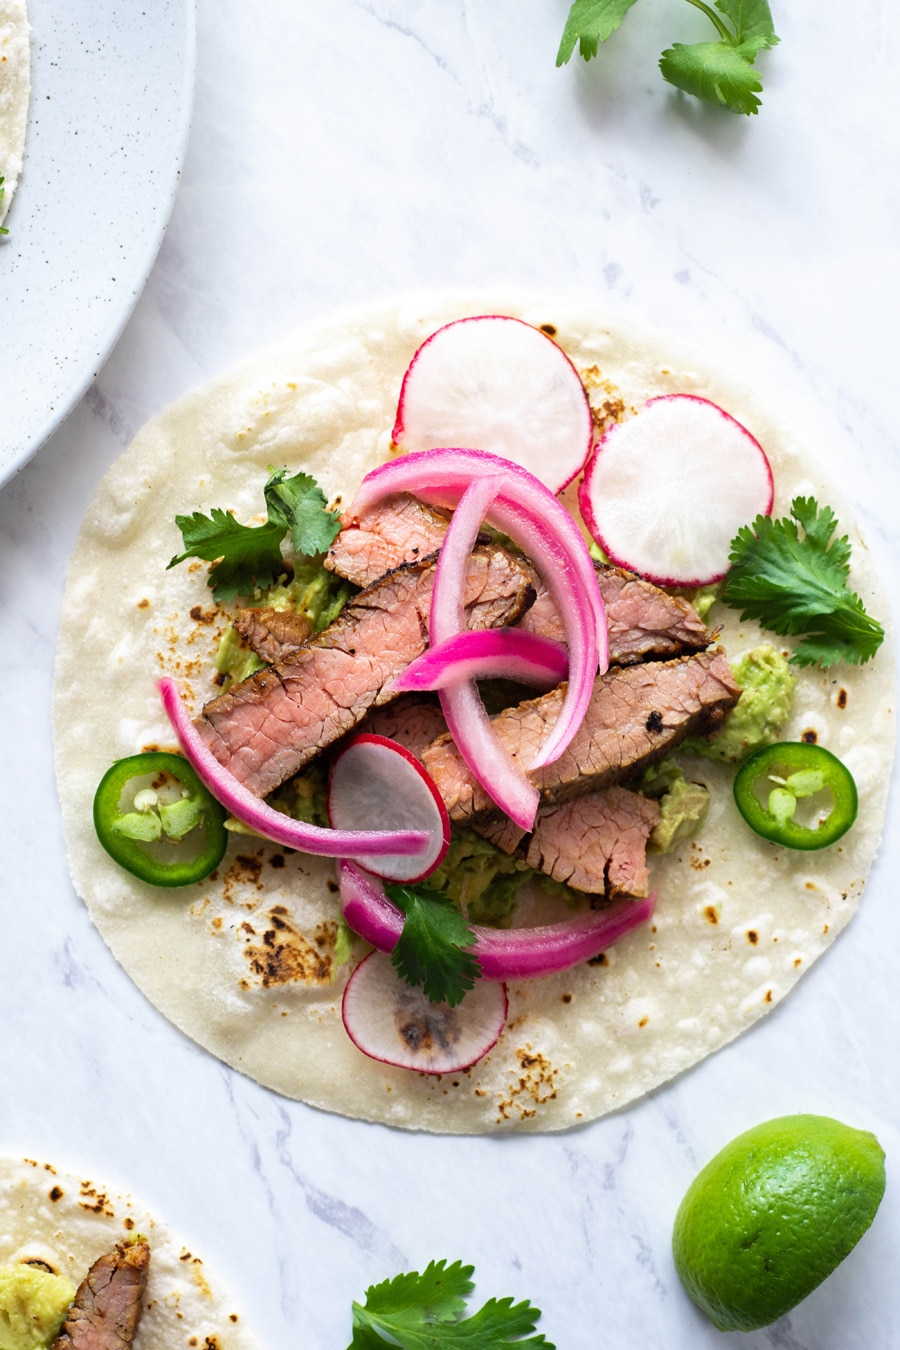 A close up shot of a steak taco on a white background with cilantro, thinly sliced jalapeno, pickled red onions